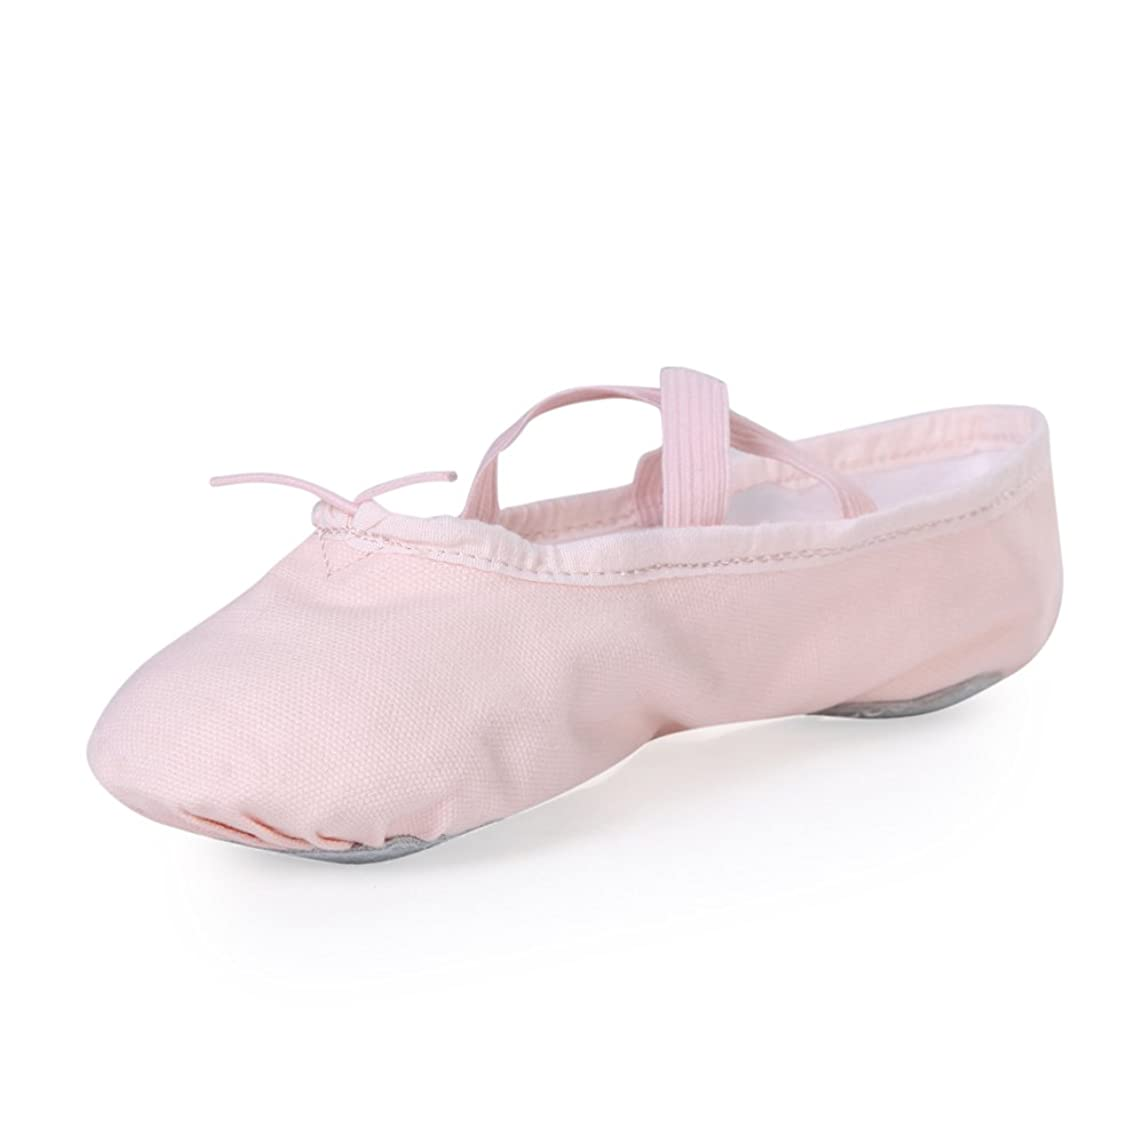 STELLE Girls Canvas Ballet Slipper/Ballet Shoe/Yoga Dance Shoe (Toddler/Little Kid/Big Kid/Women/Boy)